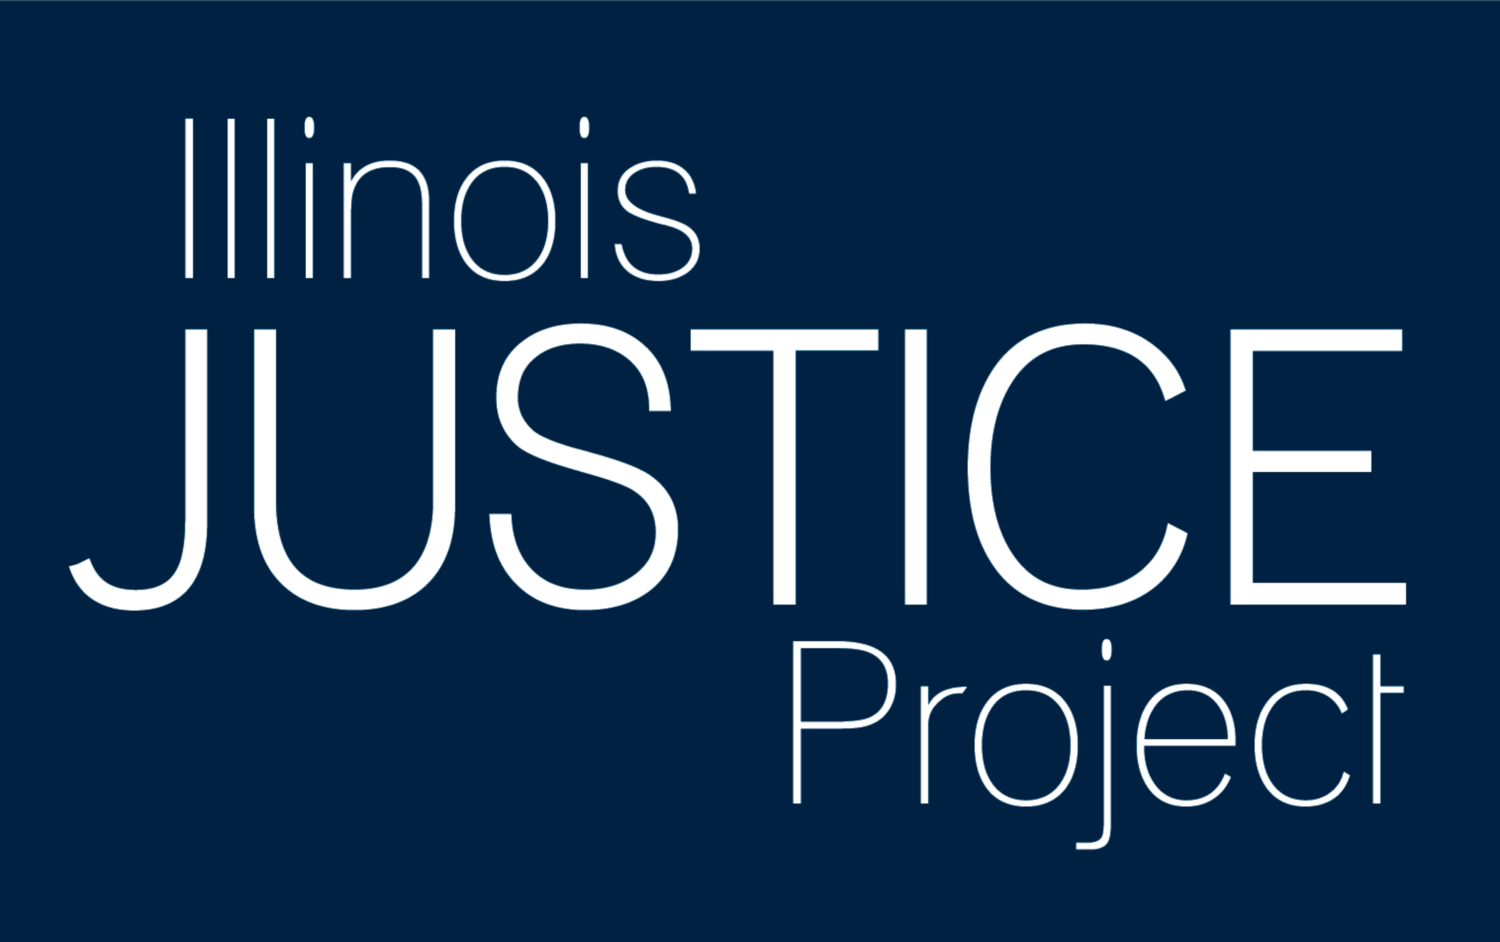 Illinois Justice Project